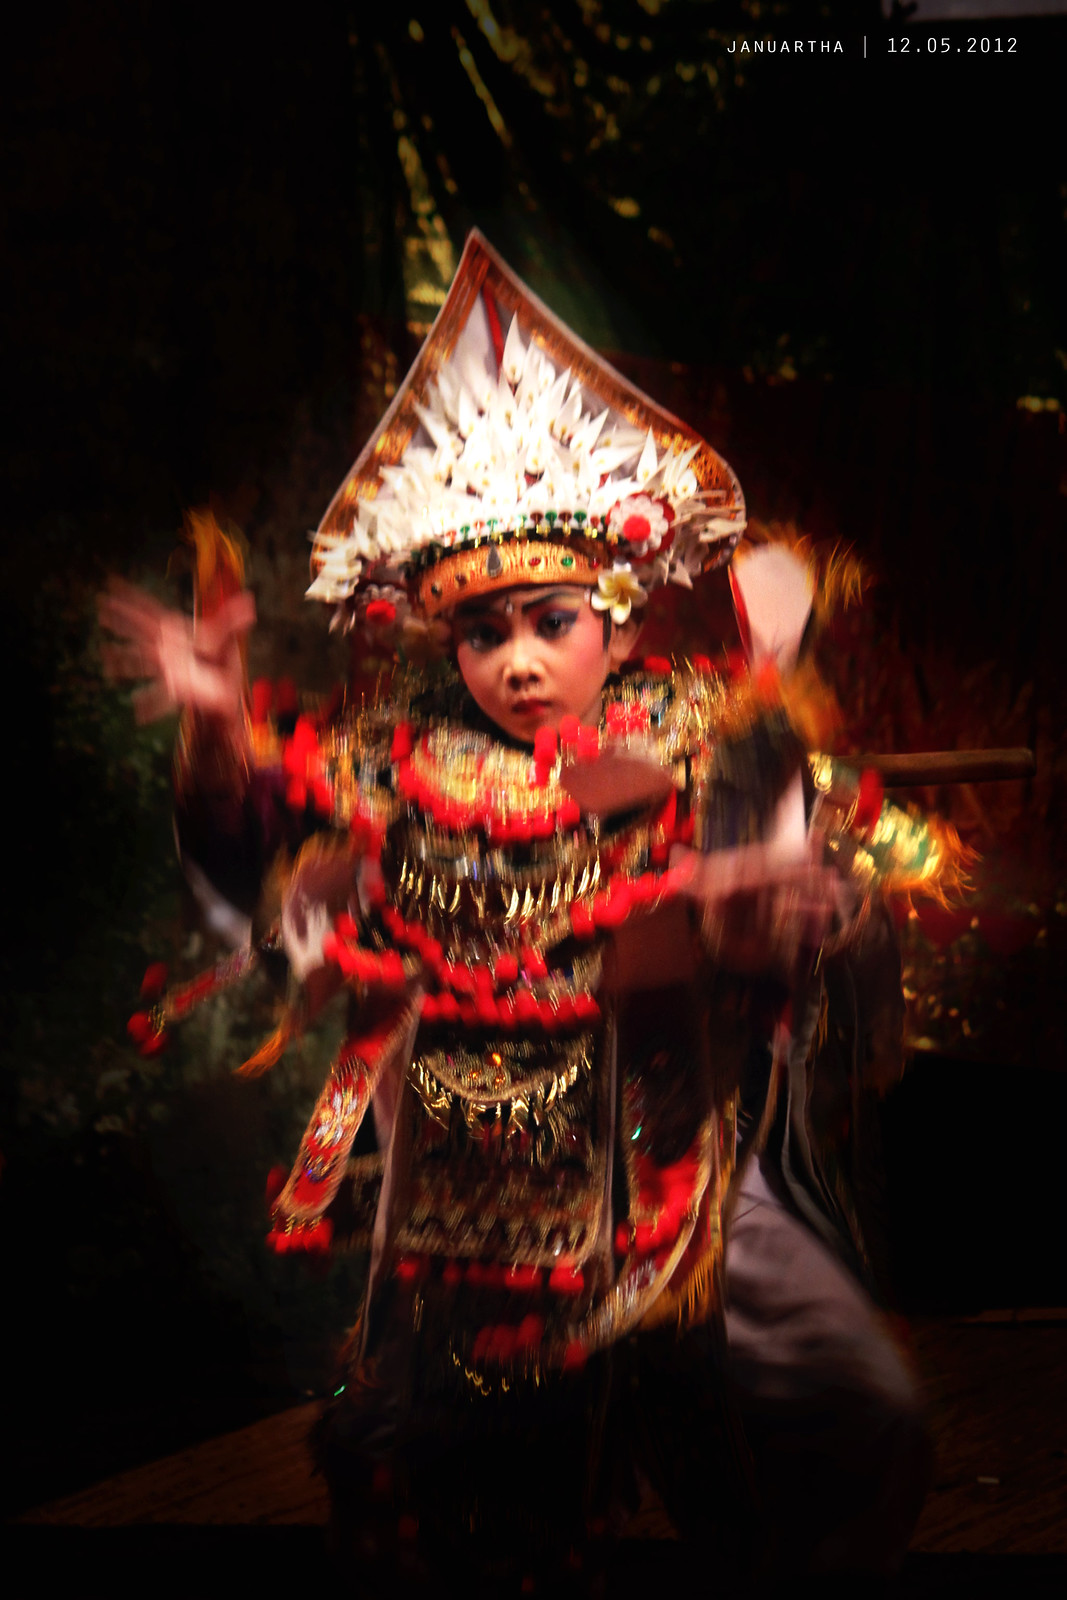 Photo of Baris dancer in motion blur